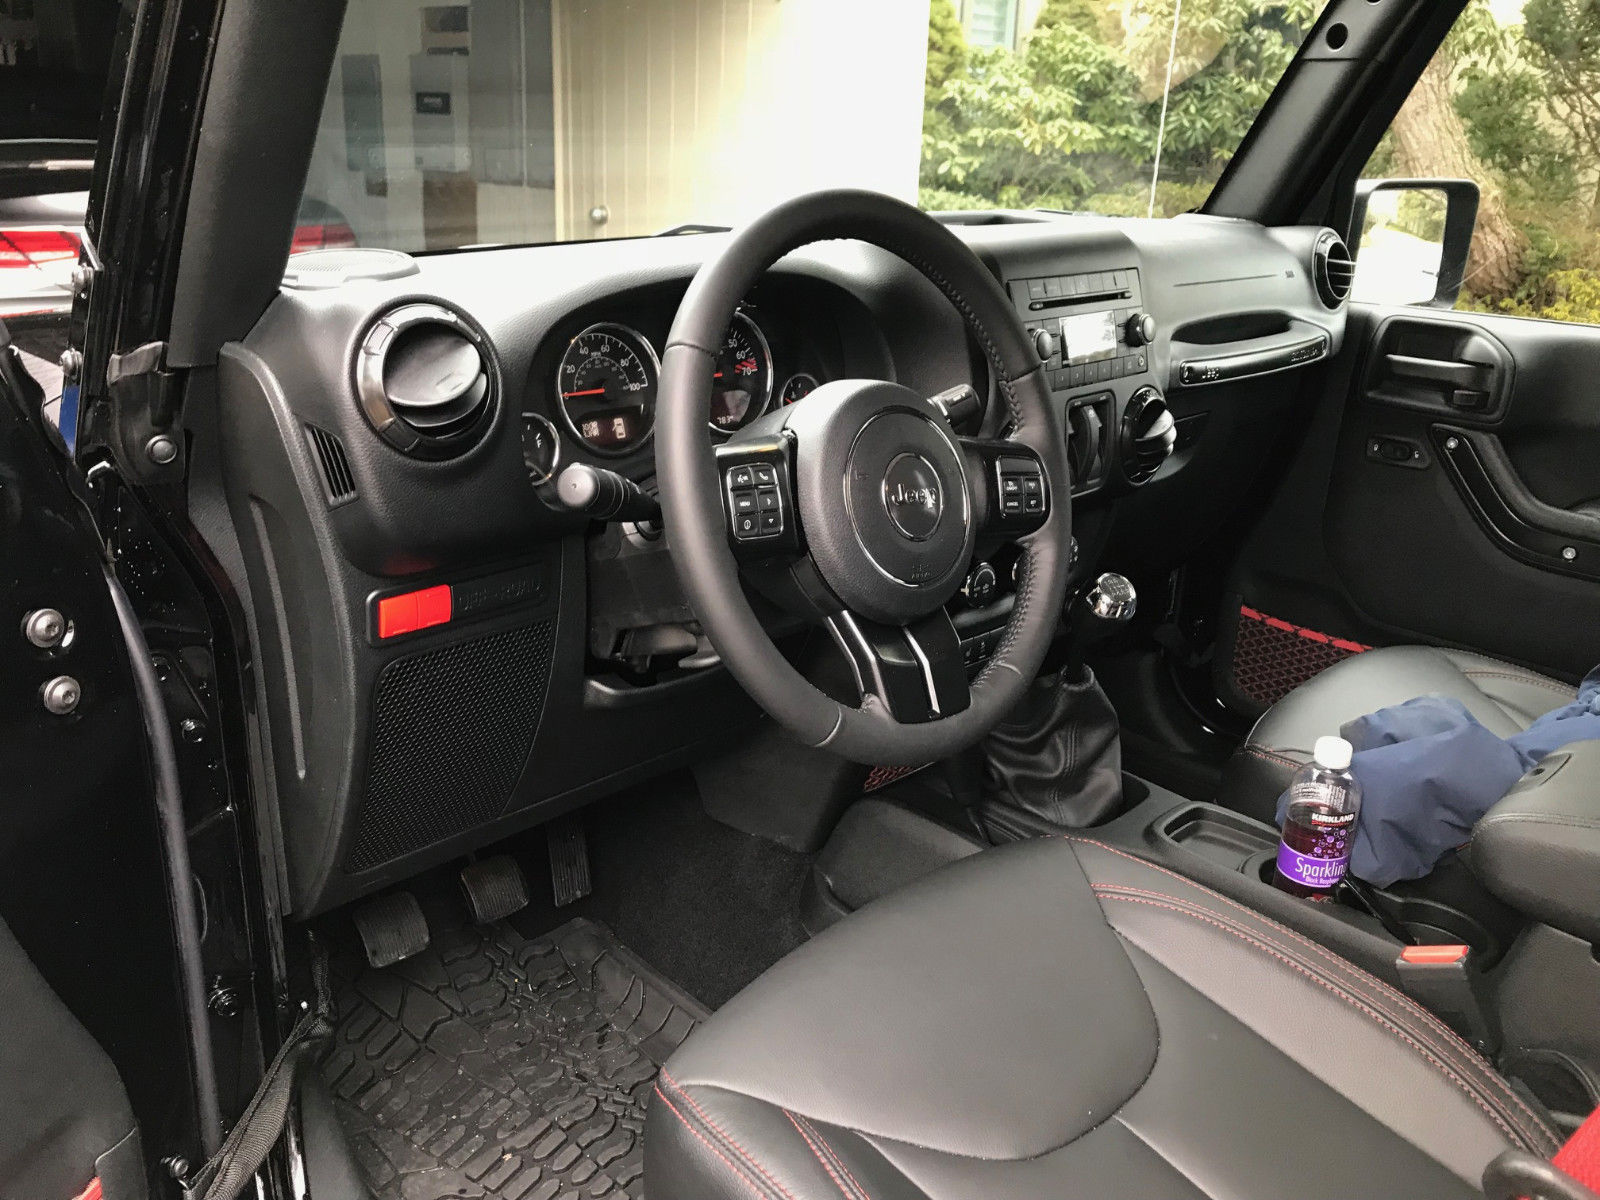 Aev Jeep For Sale >> Great 2018 Jeep Wrangler Rubicon Recon 2018 Wrangler JK Rubicon Recon 2 Door – Custom AEV 2019 ...